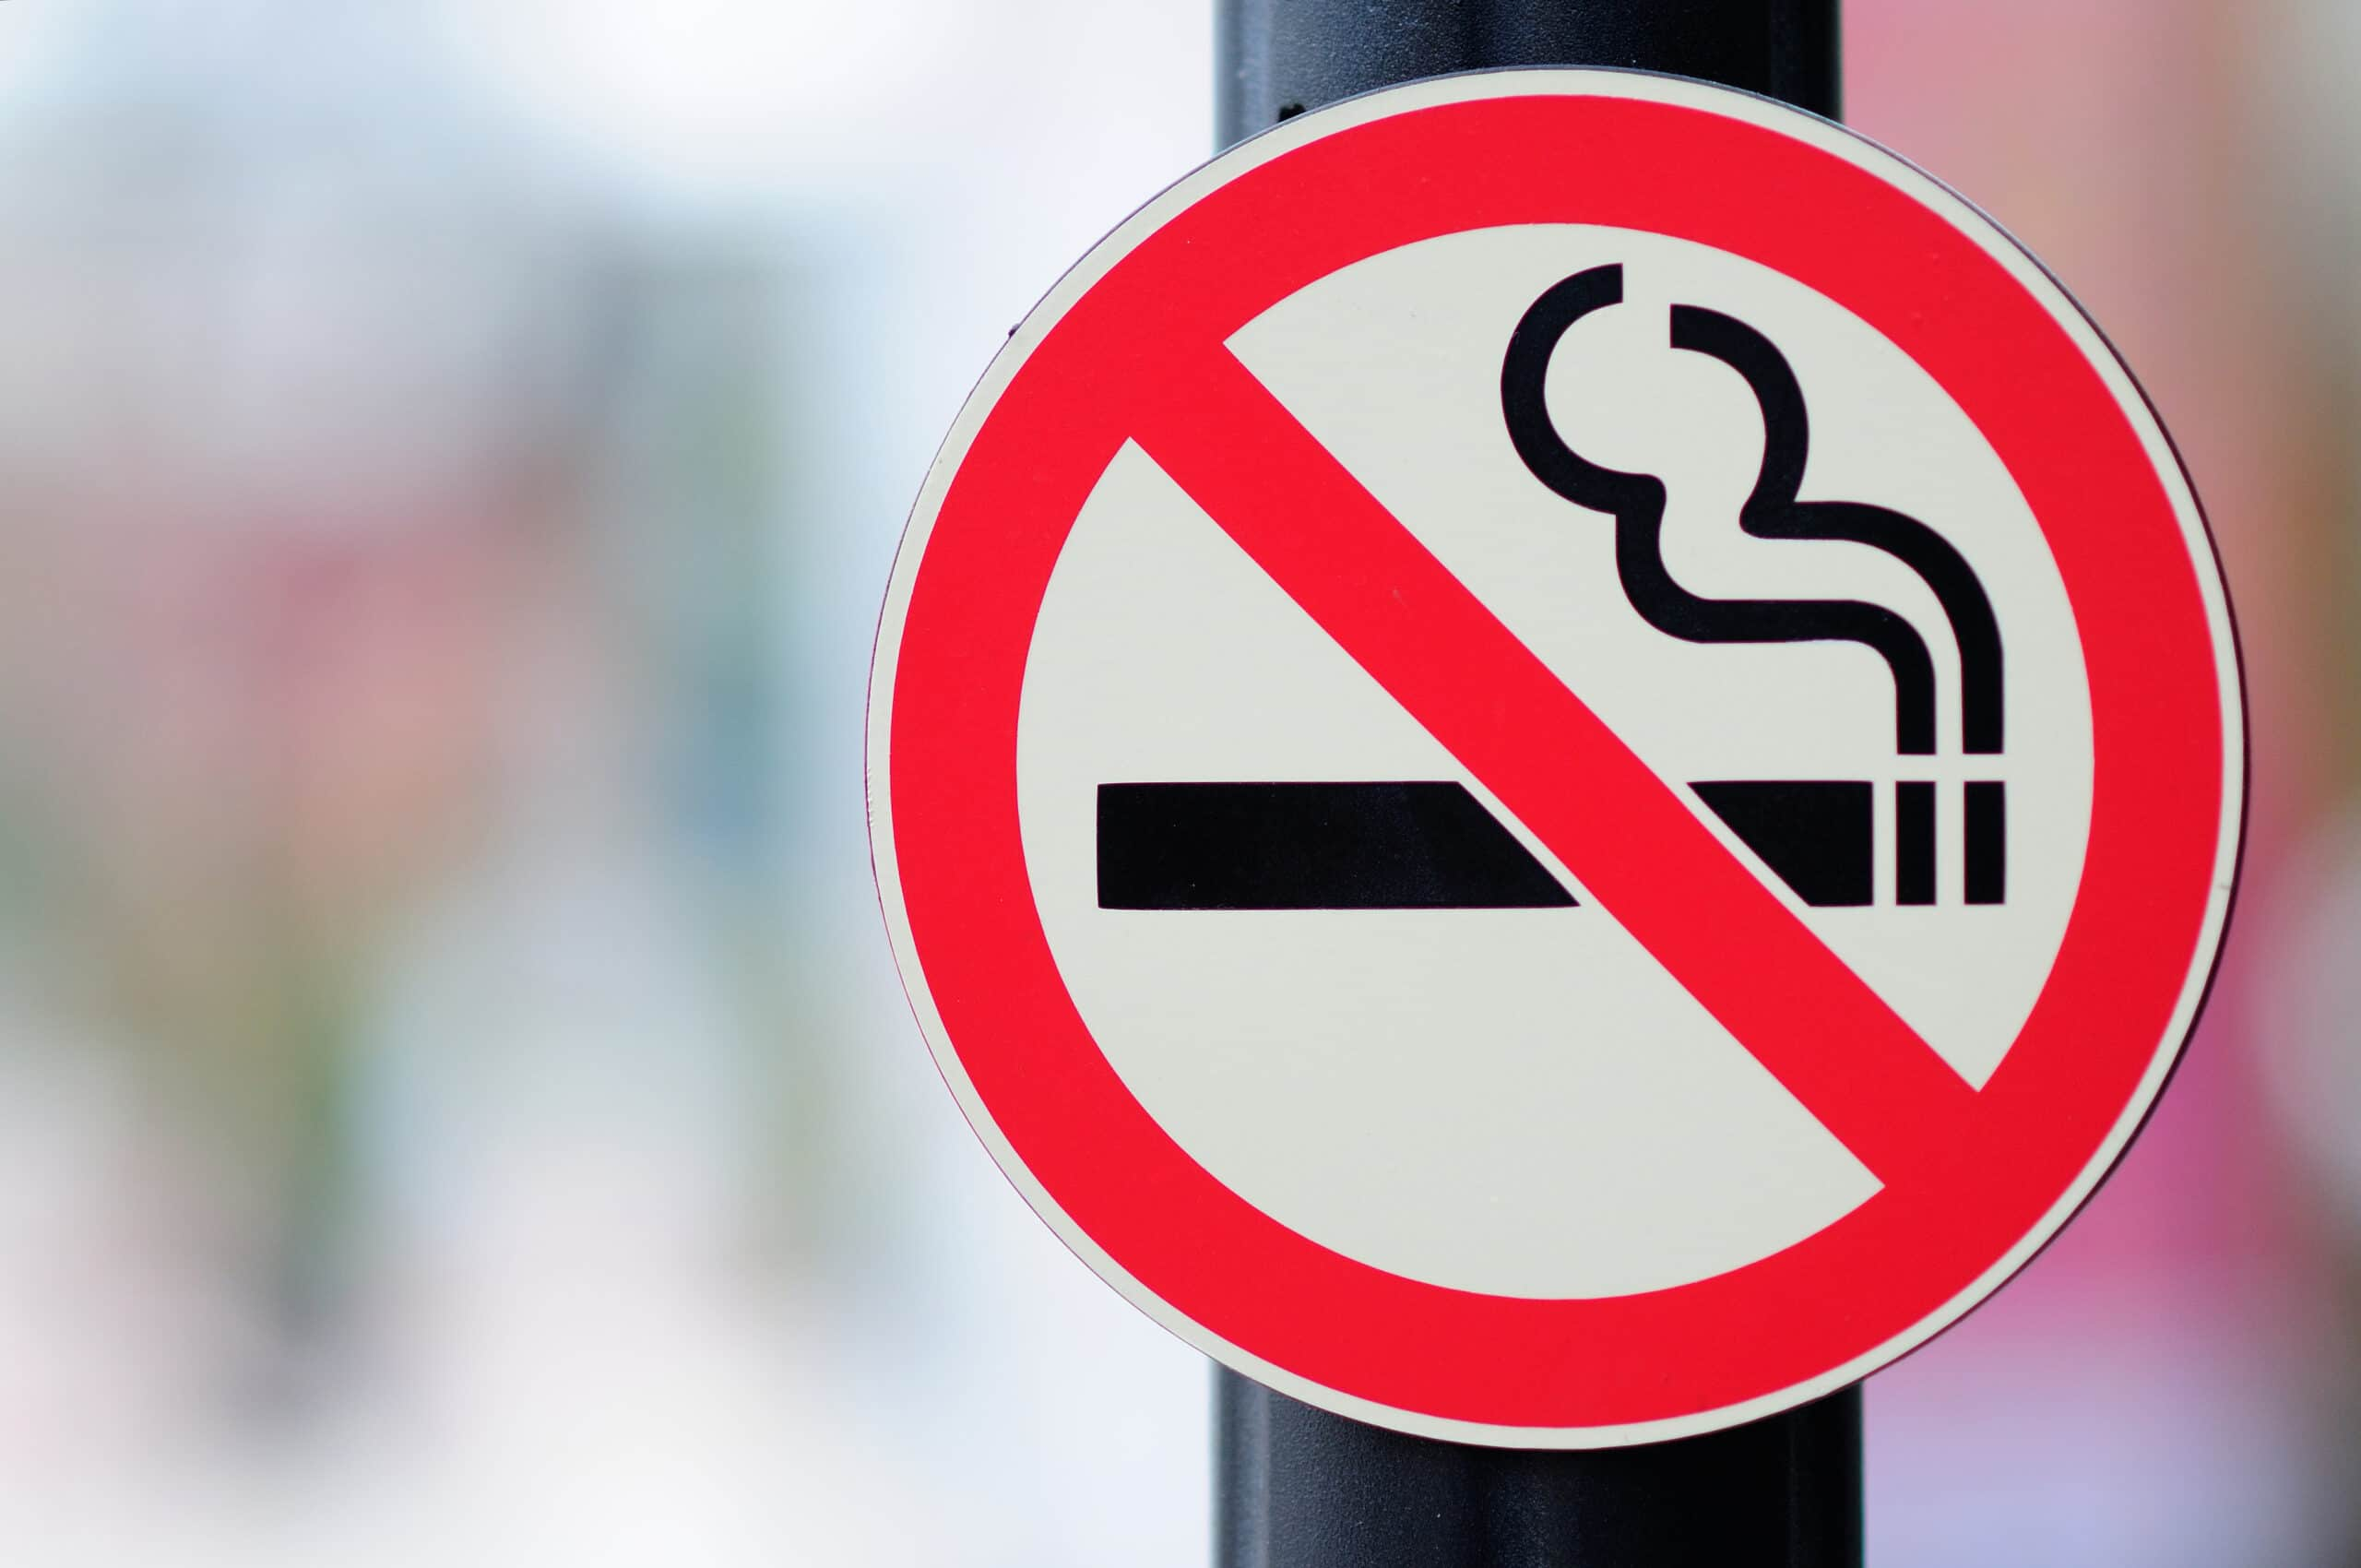 A red sign with a slash through a cigarette icon, indicating a no-smoking zone.